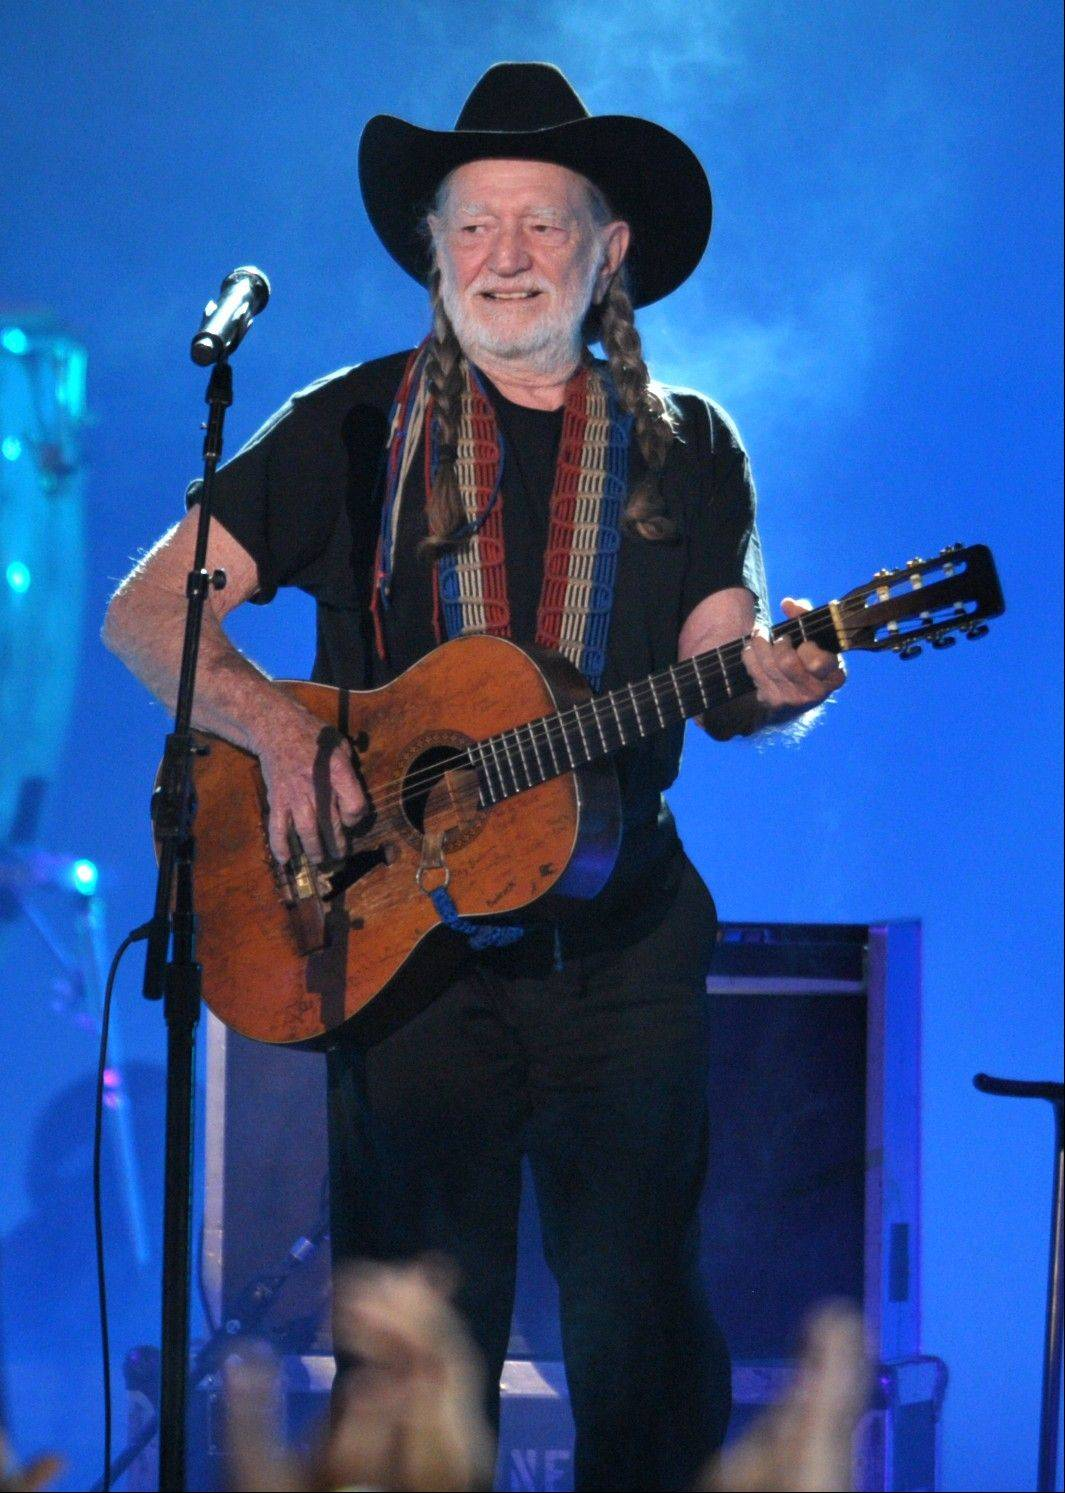 Willie Nelson postponed his four remaining November tour dates after members of his band were involved in bus crash early Saturday morning.